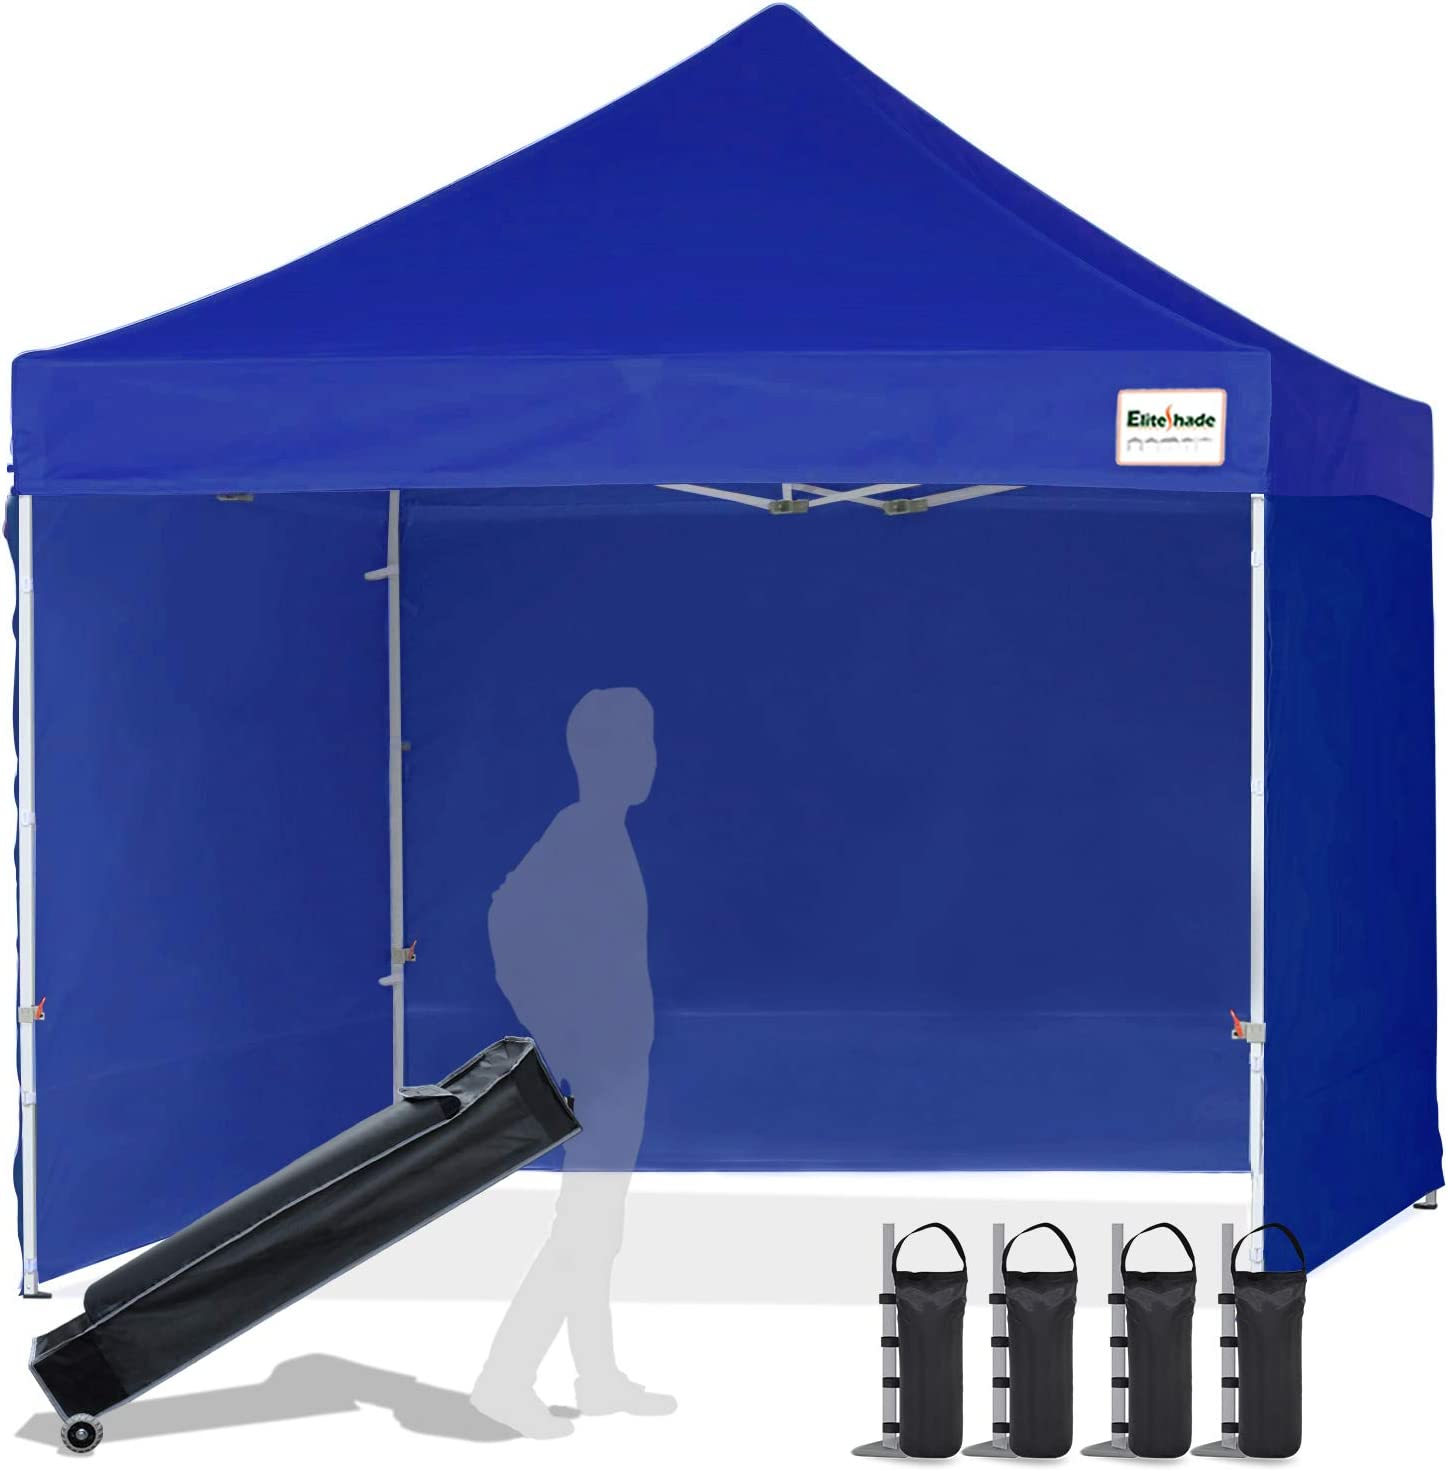 EliteShade 10 x10 Commercial Ez Pop Up Canopy Outdoor Instant Canopies Party Tent Sun Shelter with Removable Sidewalls and Heavy Duty Roller Bag,Bonus 4 Weight Bags,Royal Blue